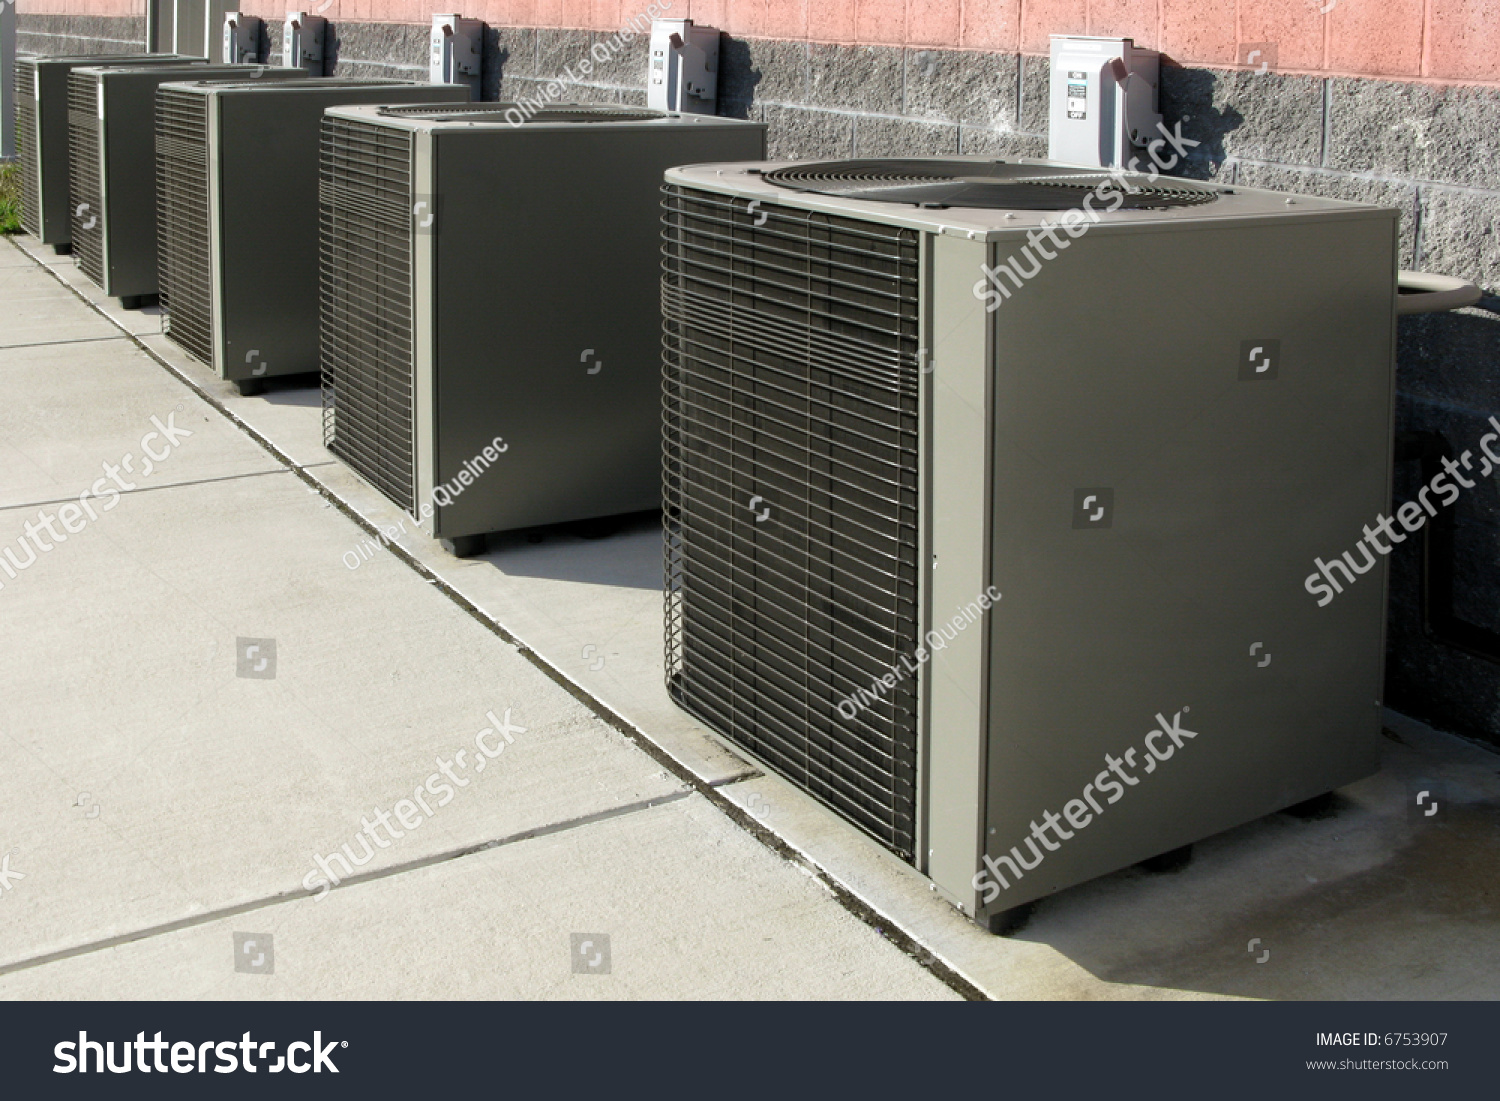 A h heating air conditioning service - 1500 Air Conditioner Outside Condenser Units Outside A Commercial Building 865545 1100